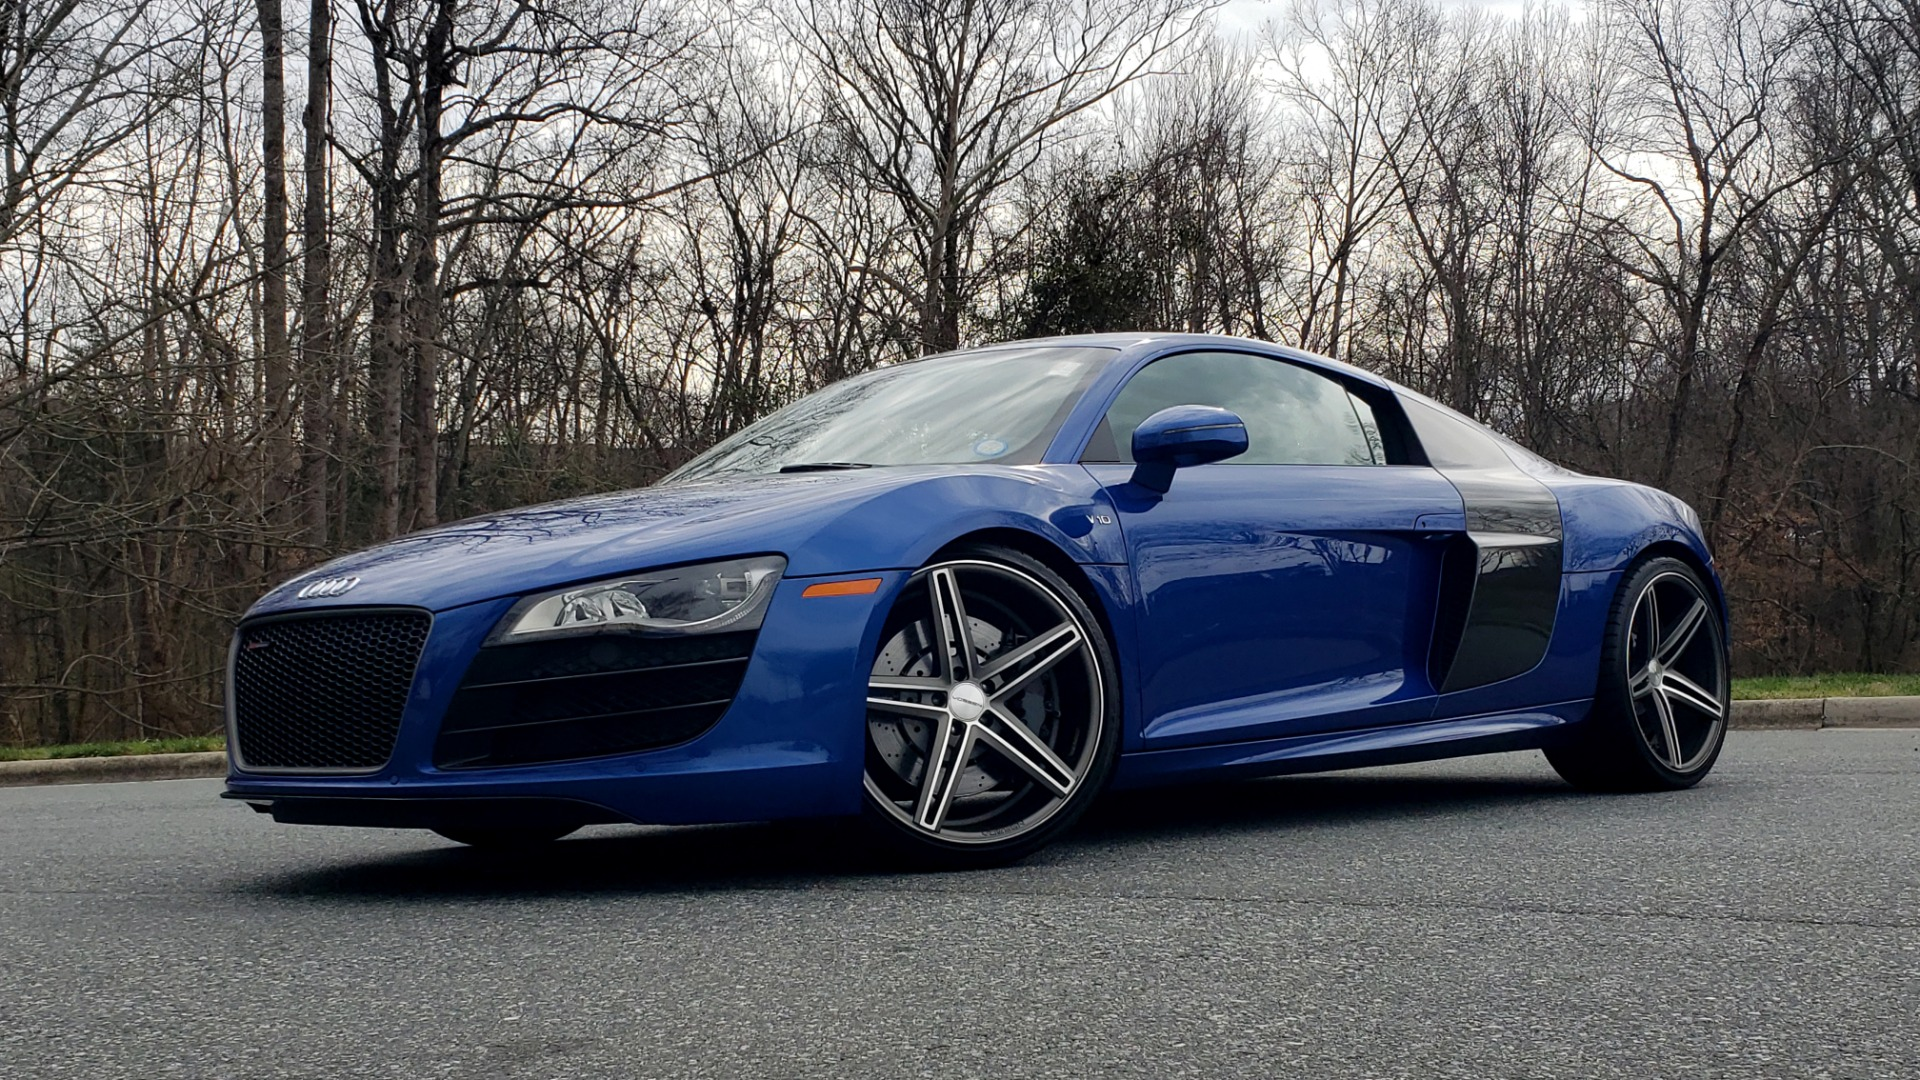 Used 2010 Audi R8 5.2L V10 / AWD / COUPE / NAV / 6-SPD AUTO / CUSTOM WHEELS for sale Sold at Formula Imports in Charlotte NC 28227 1